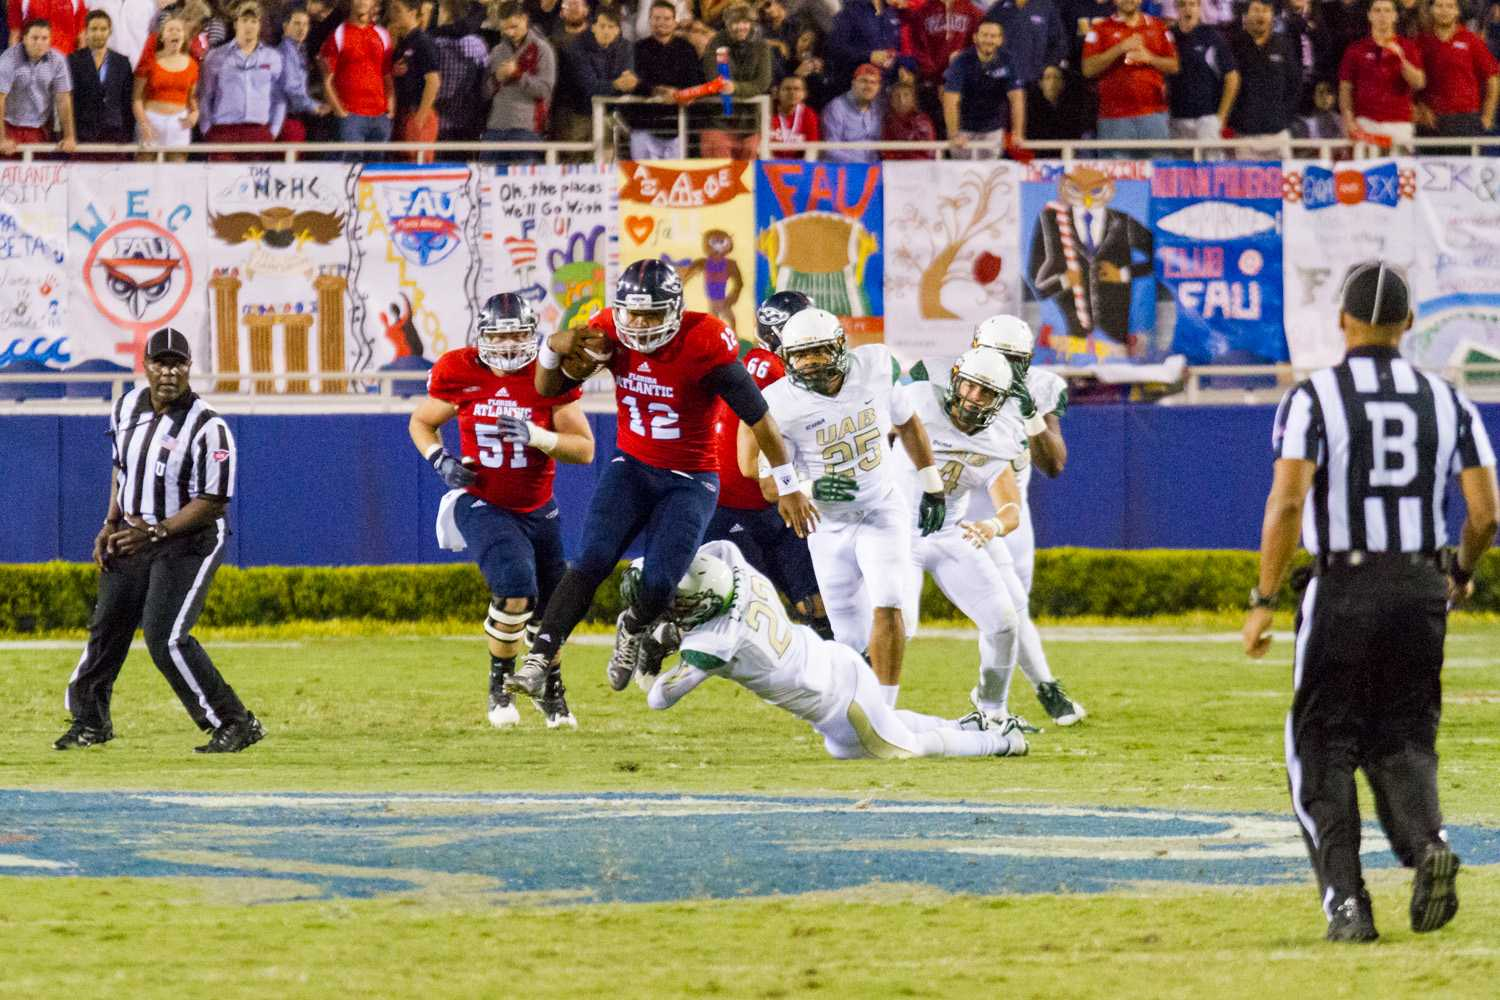 [ Mohammed F Emran | Web Editor ]  Quarterback Jaquez Johnson rushes for 18 yards to the FAU 46 for a first down.